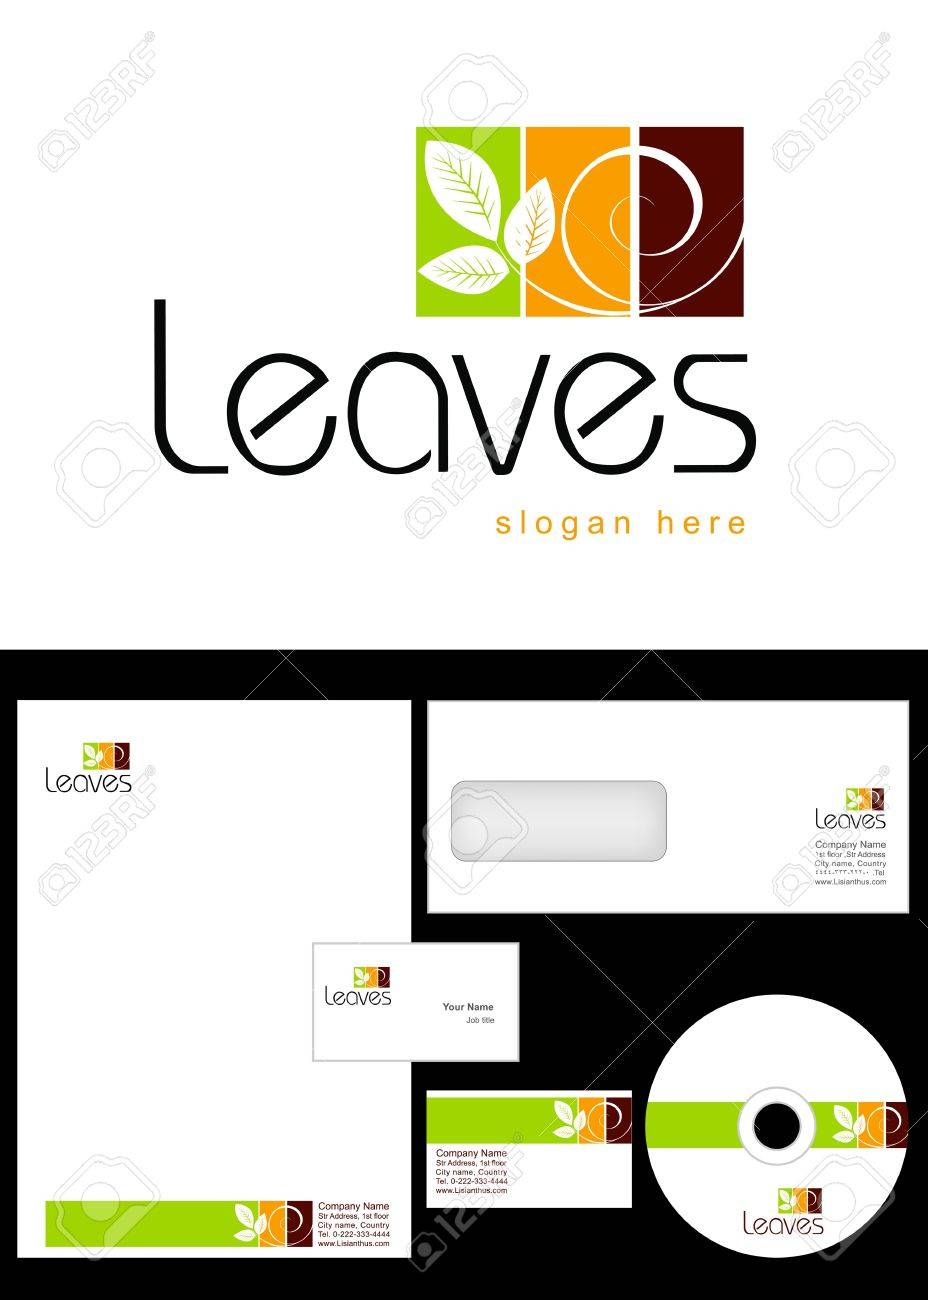 Leaves Logo Design And Corporate Identity Package Including Logo ...